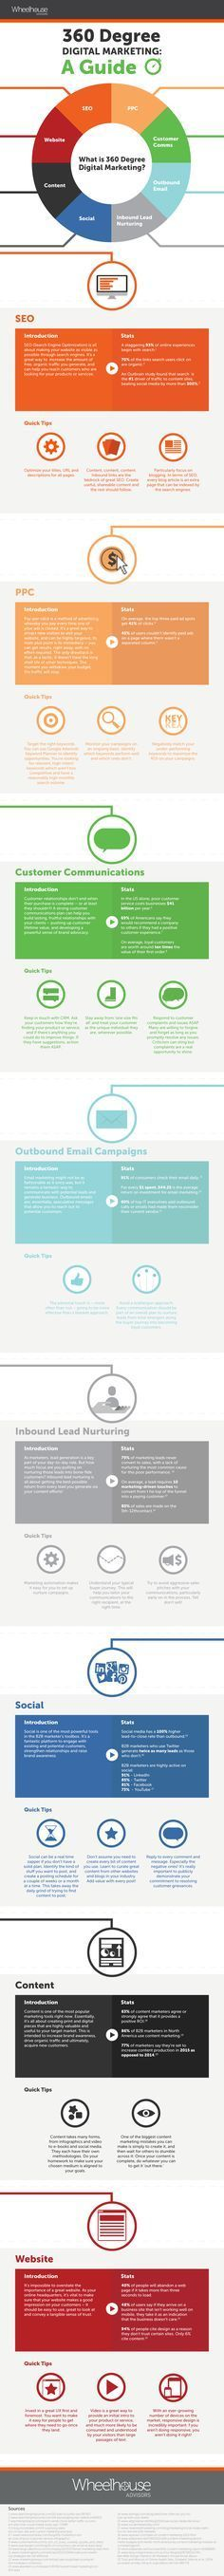 Developing A 360-Degree Digital Marketing Strategy - infographic   While check out #knackmap. To help you achieve your social media goal, all in one place. Learn more at knackmap.com #inboundmarketinglogo